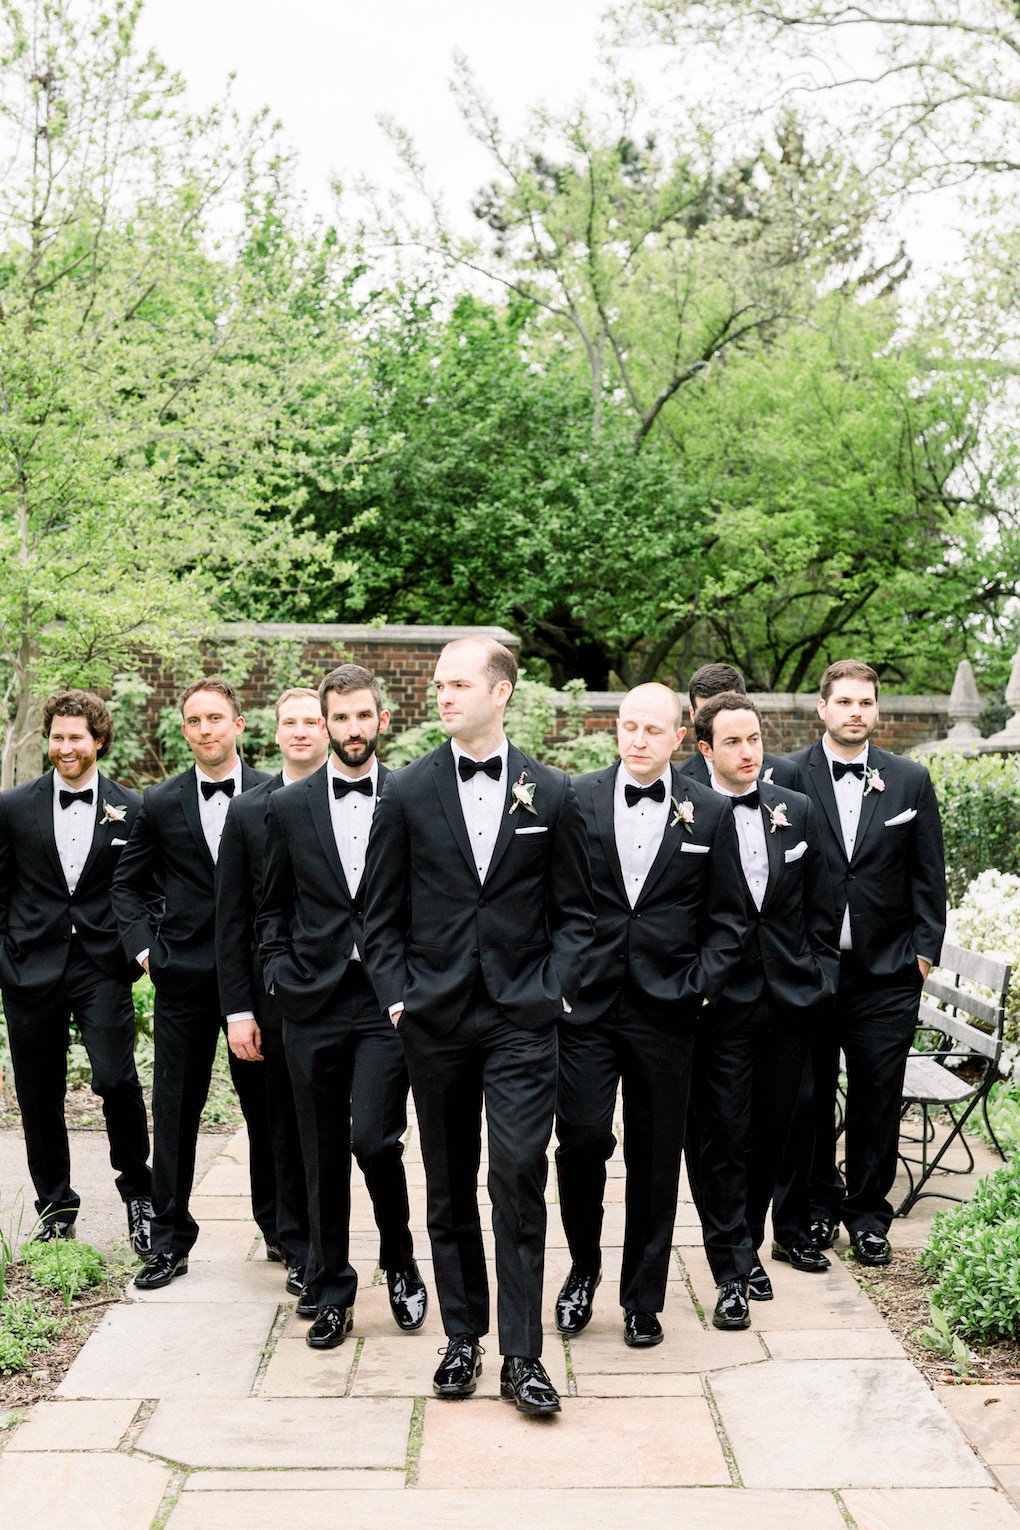 Grooms and groomsmen: Romantic Fairytale wedding at the Omni William Penn in Pittsburgh, PA planned by Exhale Events. Find more wedding inspiration at exhale-events.com!